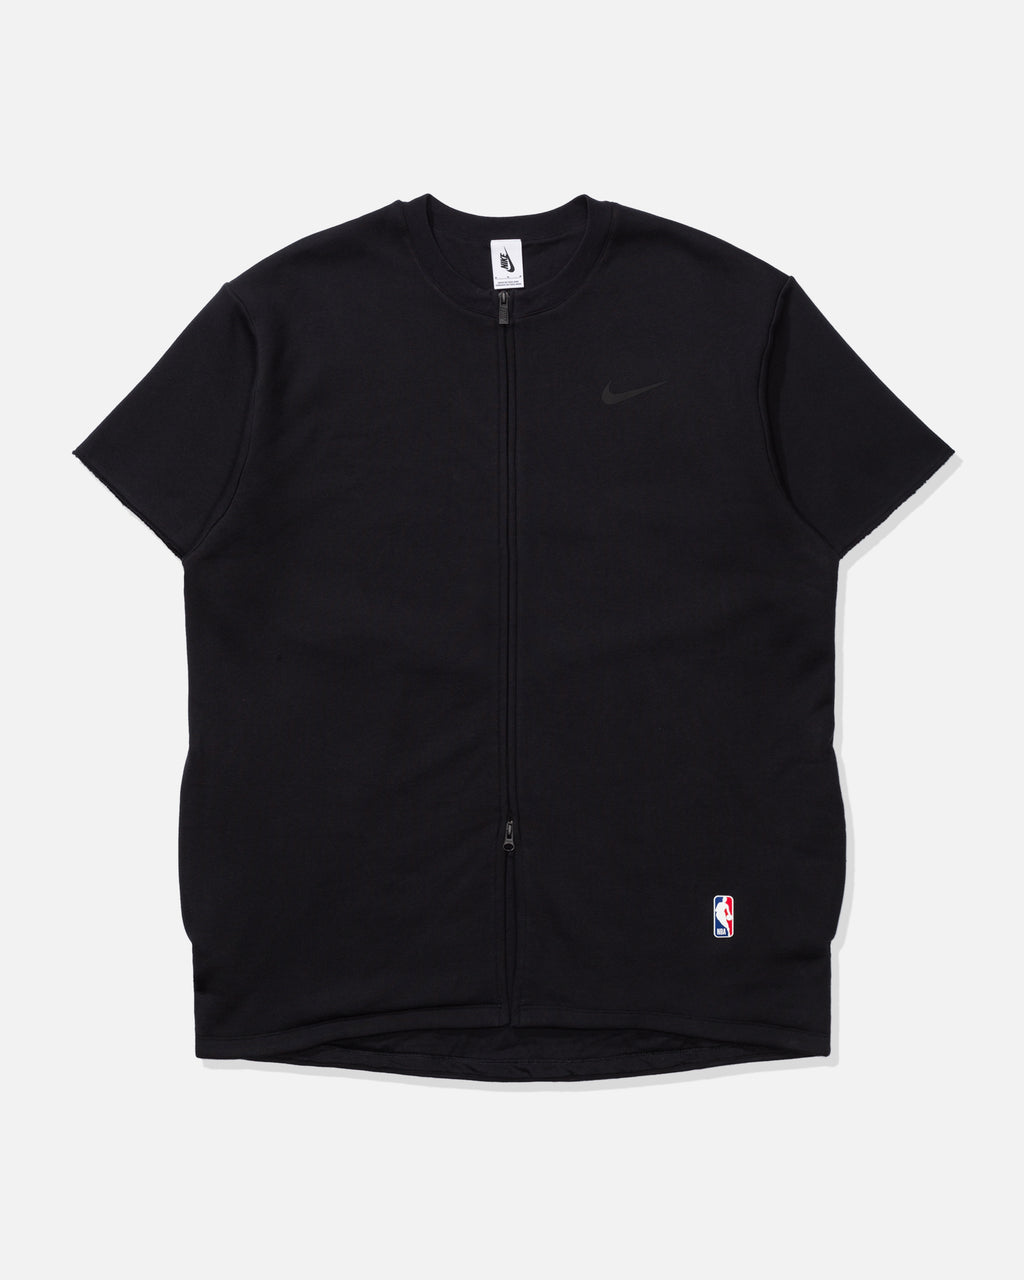 NIKE X FEAR OF GOD WARM UP TOP - BLACK